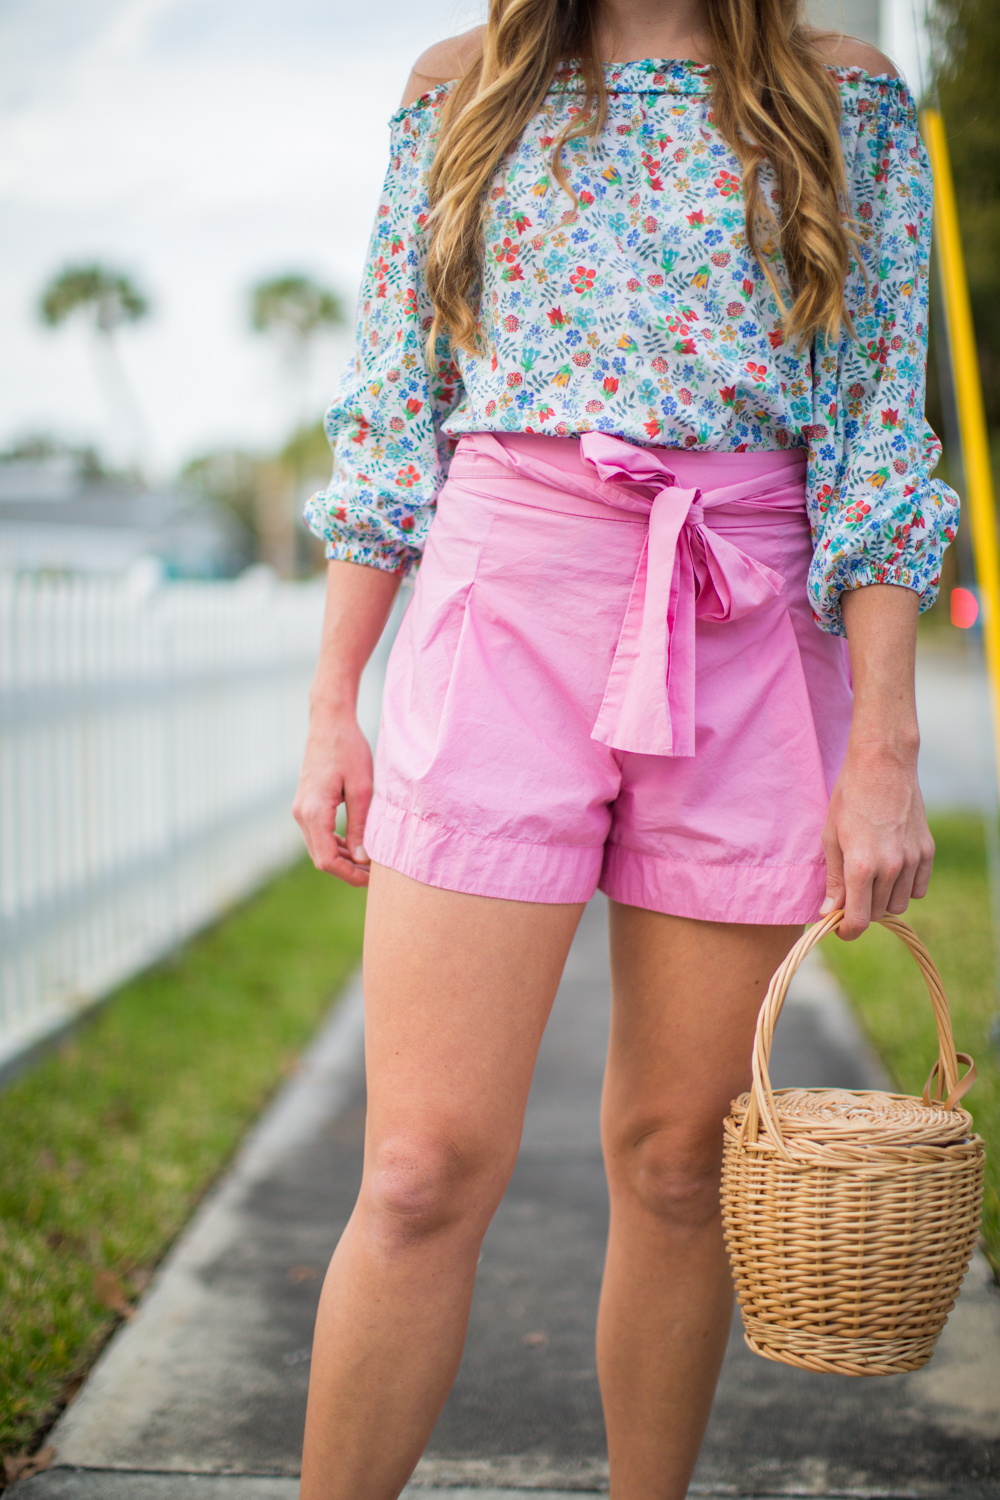 The Cutest Bow Shorts for Spring / An Easy Easter Outfit / Florals for Spring / Spring Outfit Inspiration / J.Crew Floral Top / J.Crew Tie Bow Shorts / Basket Bag - Sunshine Style